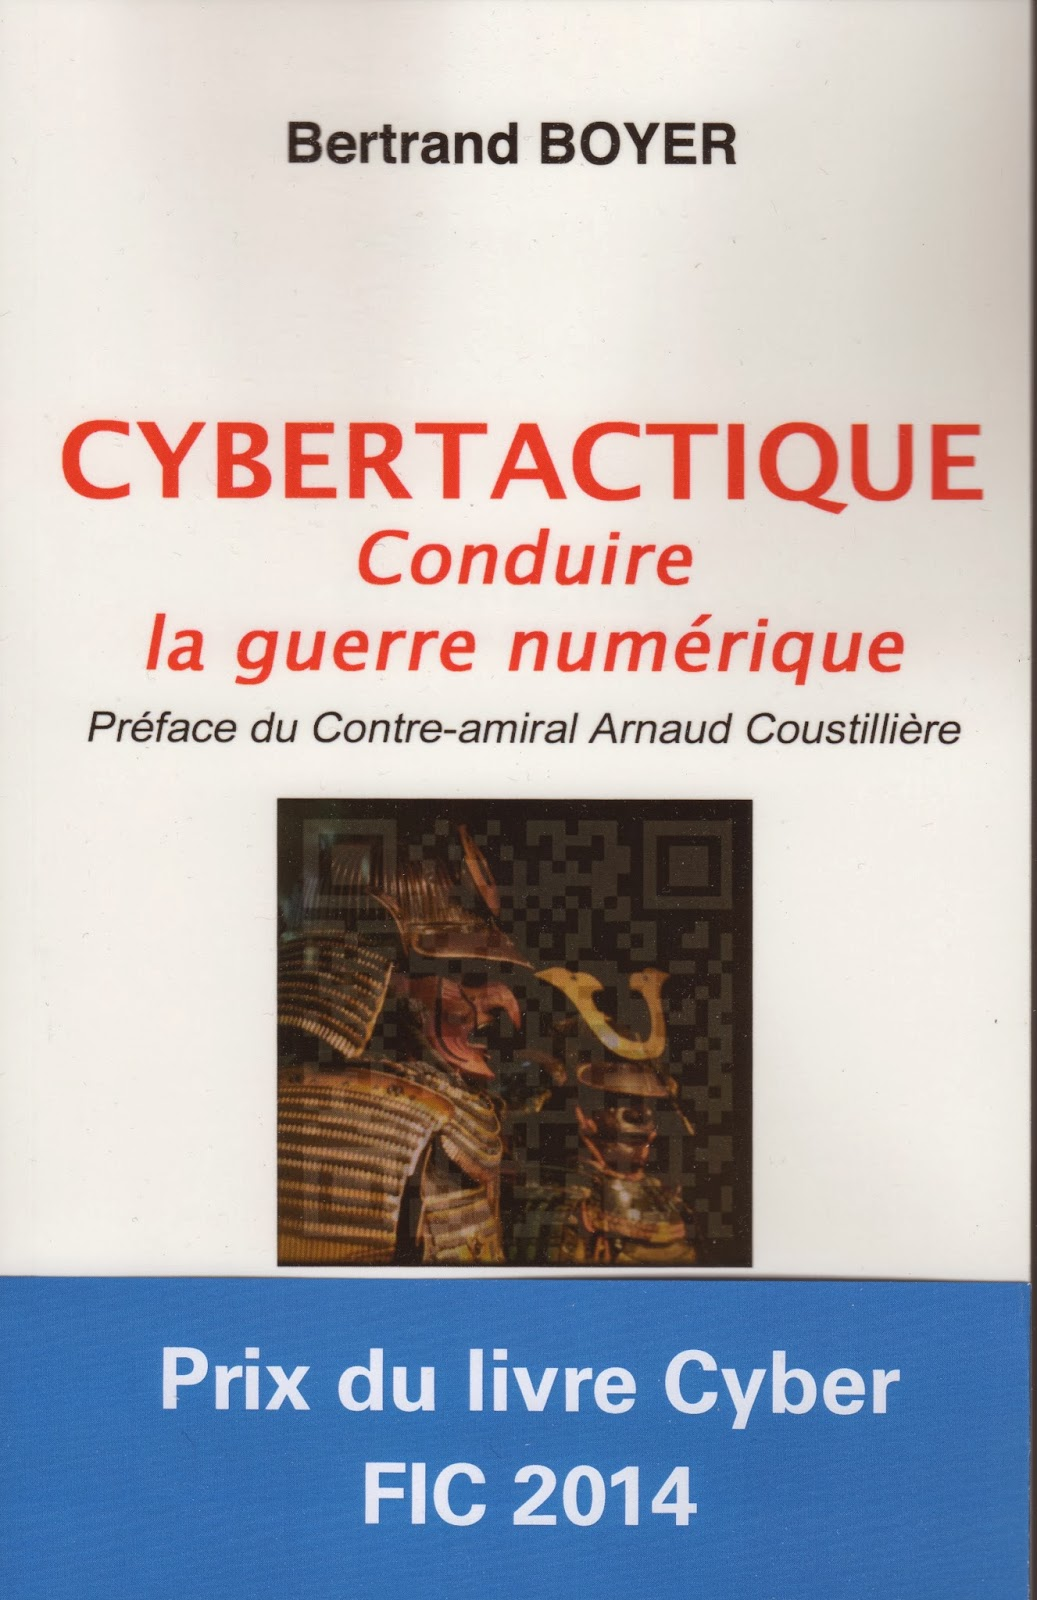 http://www.amazon.fr/Cybertactique-Conduire-Guerre-Numerique-Bertrand/dp/2363670604/ref=sr_1_1?s=books&ie=UTF8&qid=1390415899&sr=1-1&keywords=cybertactique